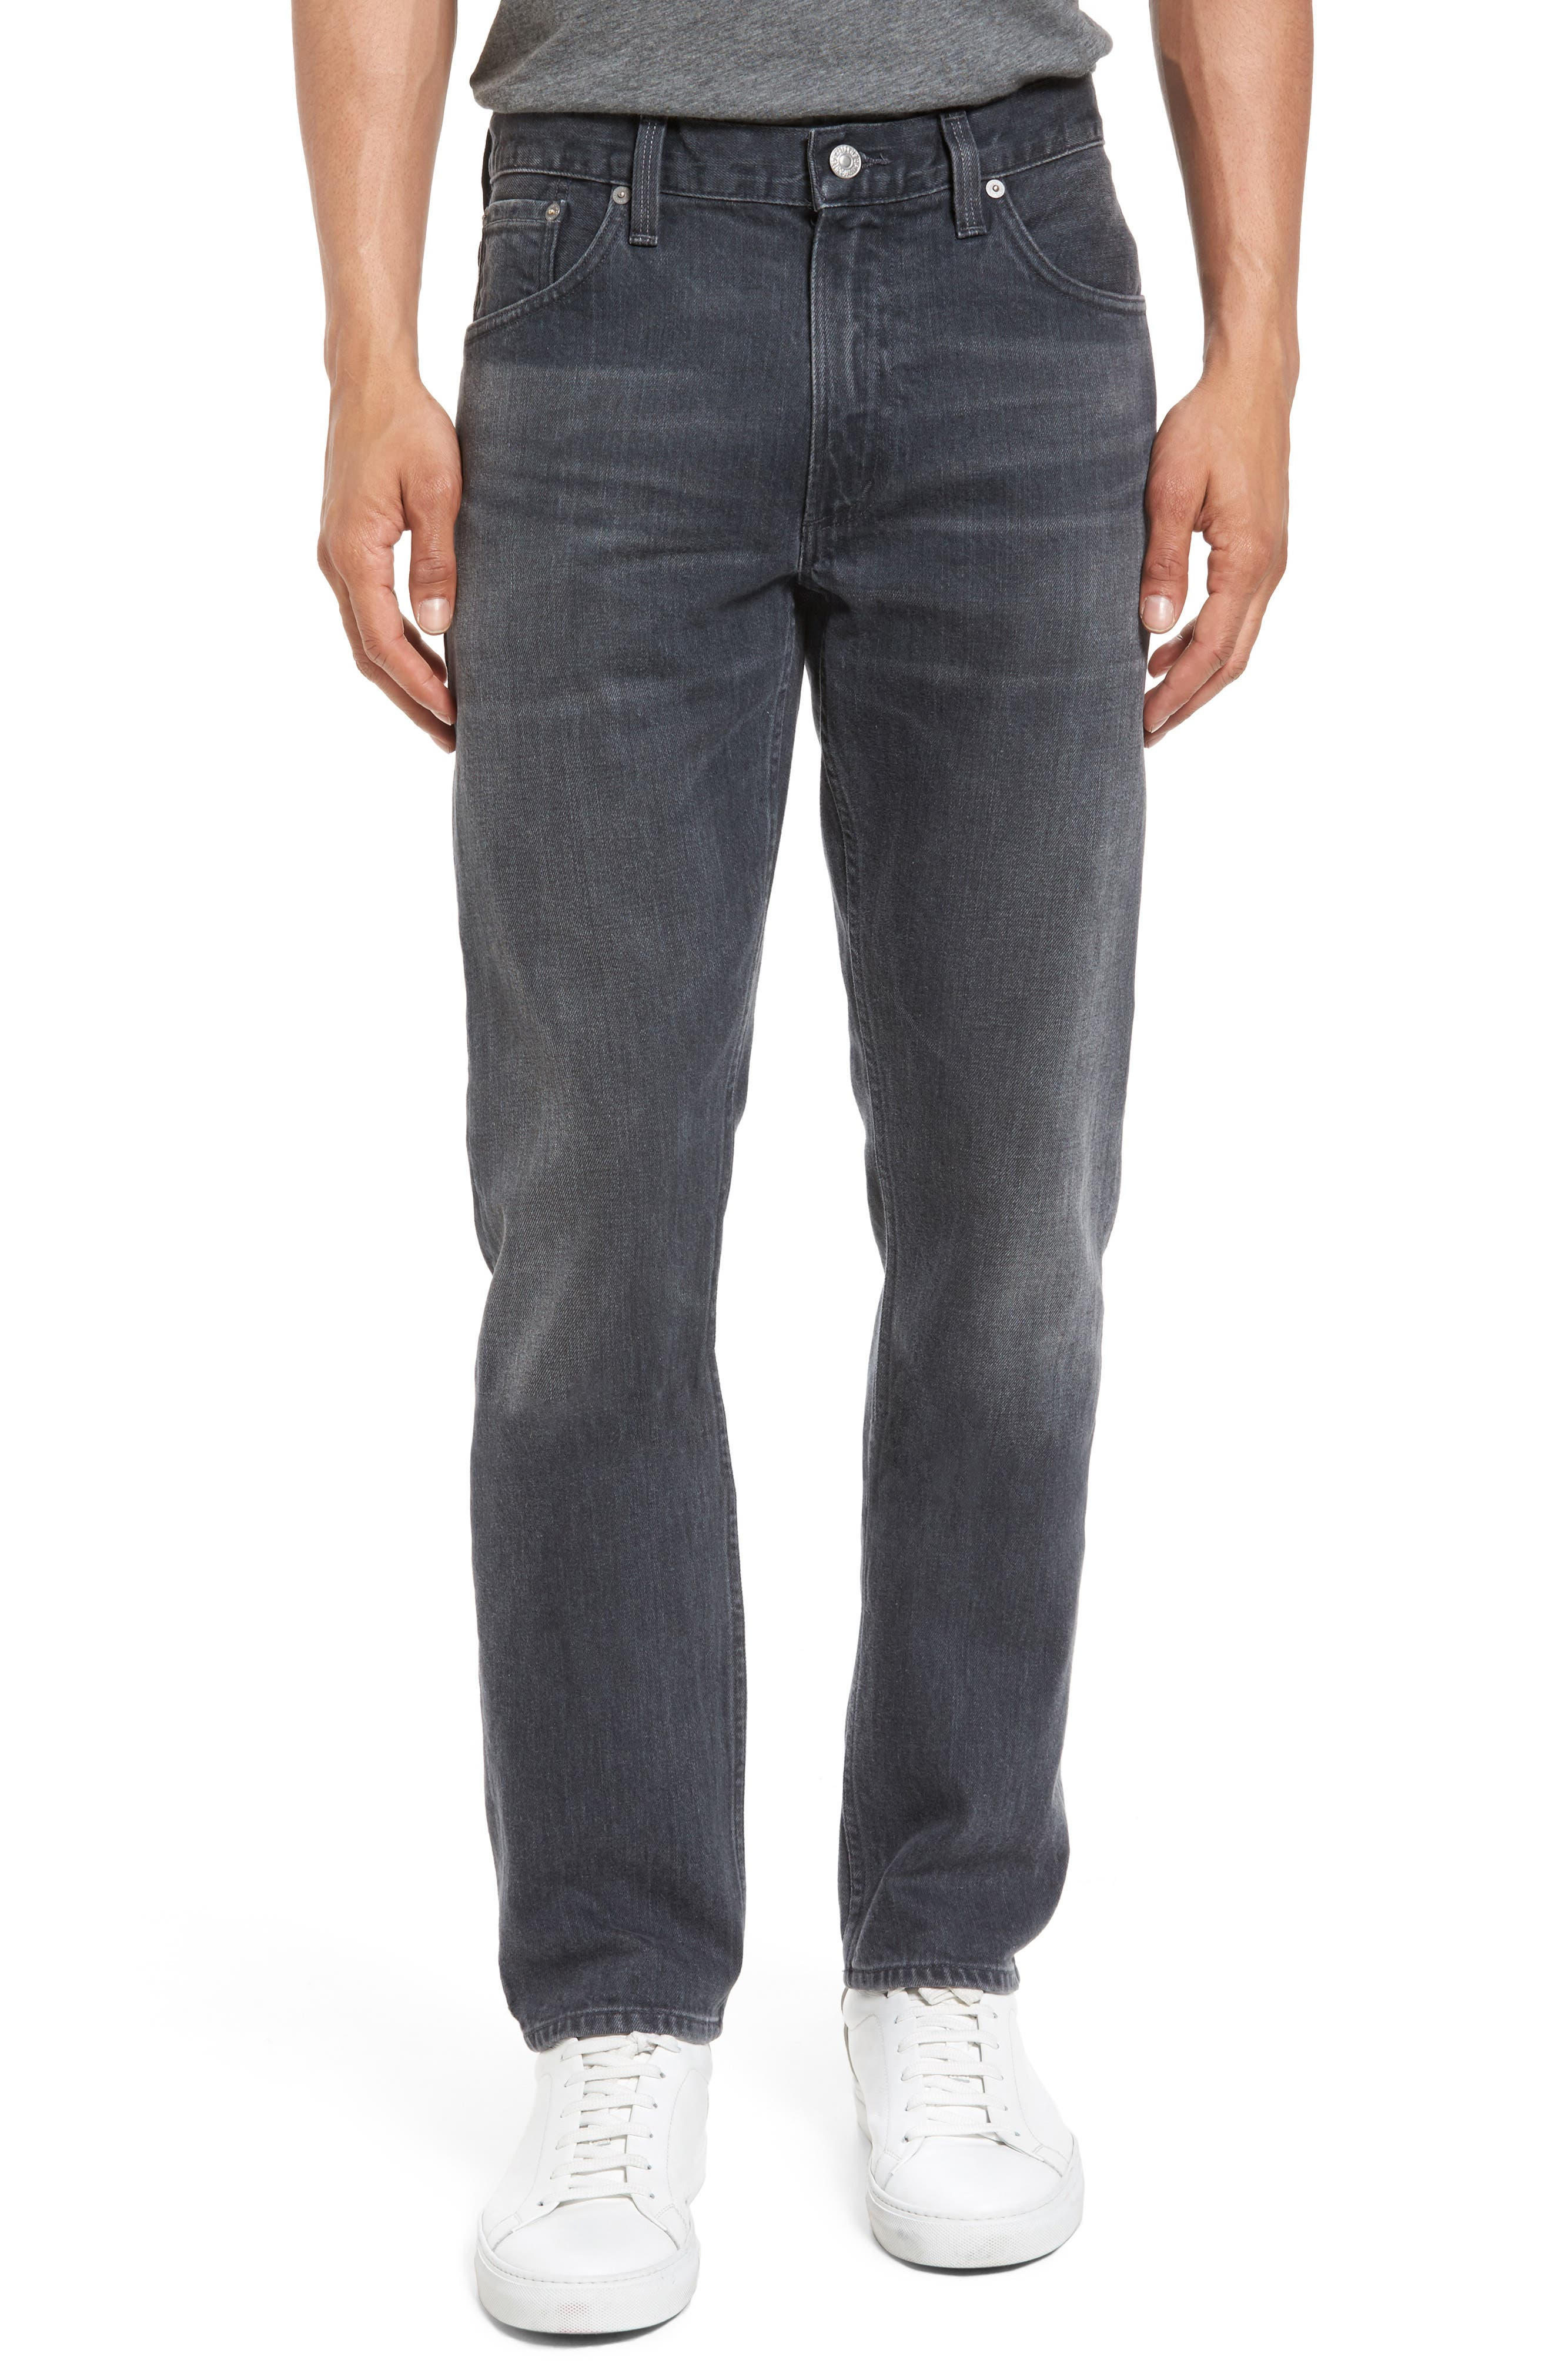 Bowery Slim Fit Jeans,                             Main thumbnail 1, color,                             022